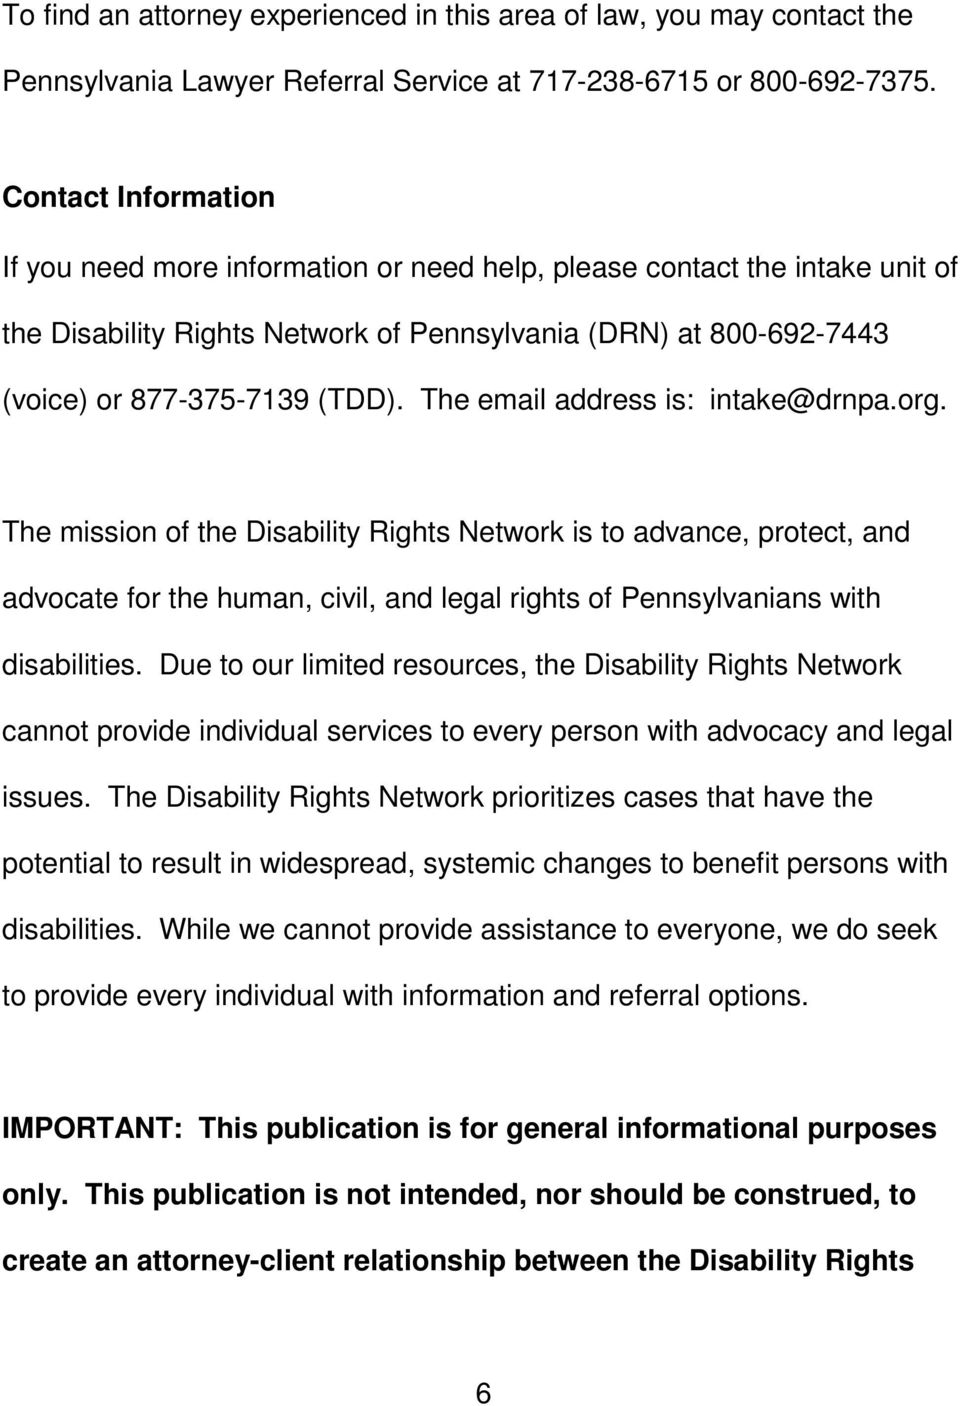 The email address is: intake@drnpa.org. The mission of the Disability Rights Network is to advance, protect, and advocate for the human, civil, and legal rights of Pennsylvanians with disabilities.